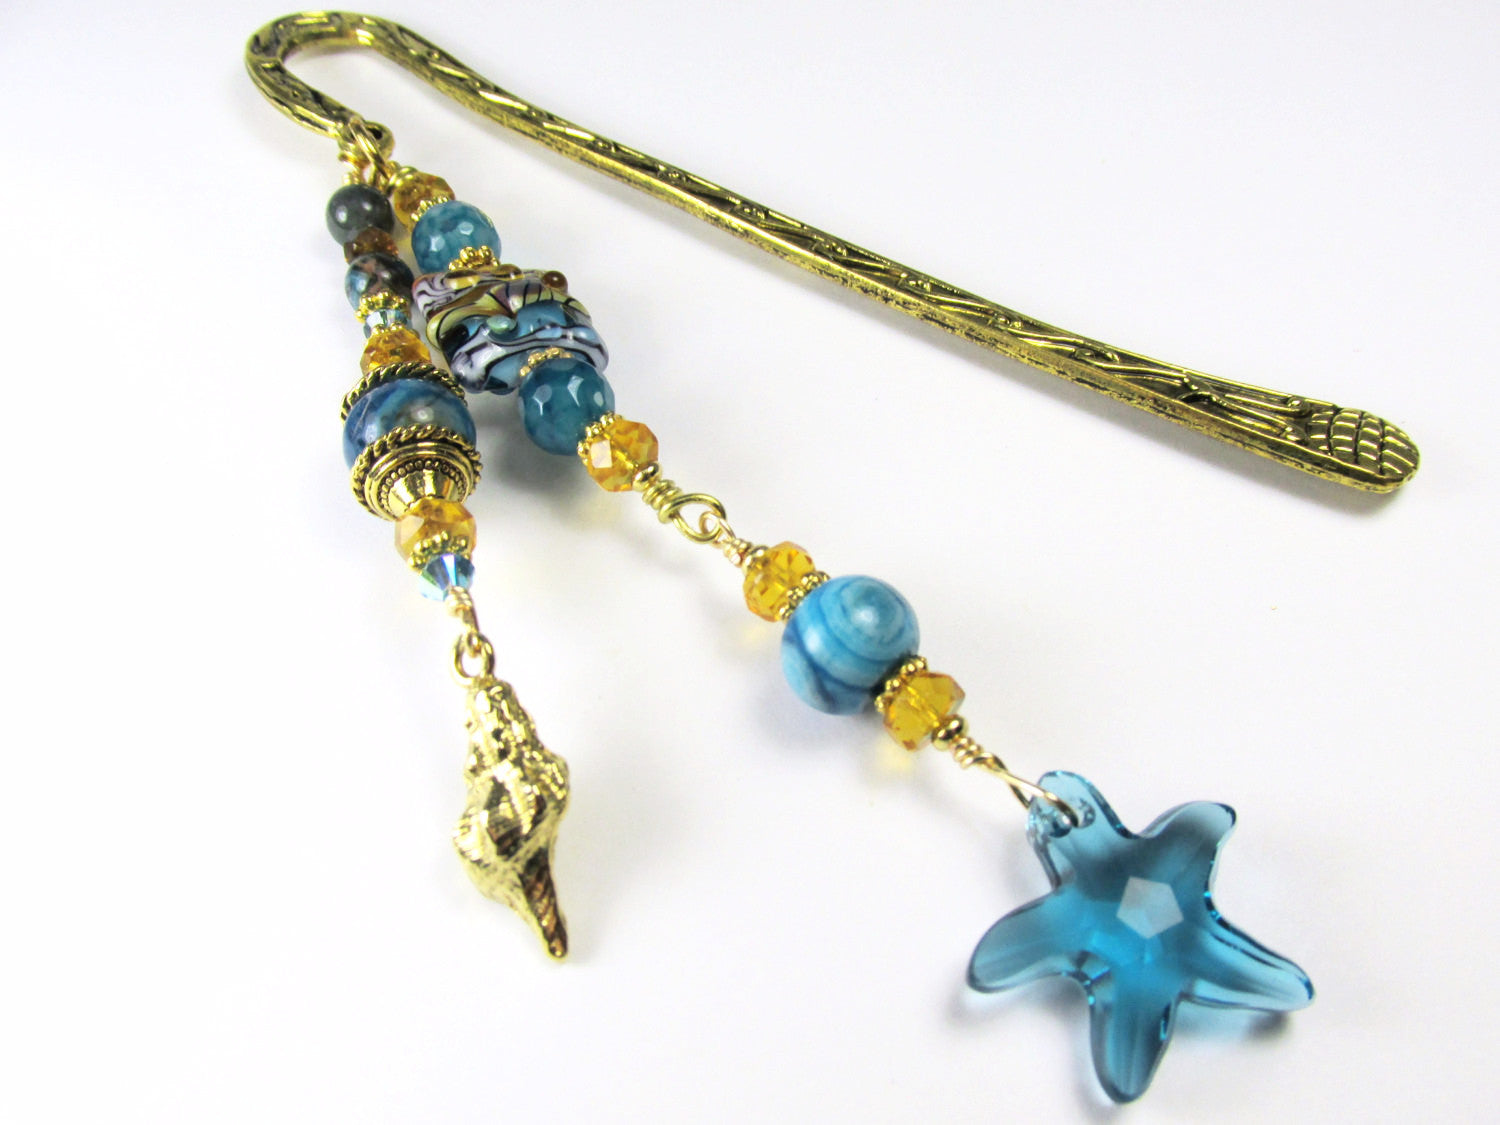 Beaded Bookmark with Grace Lampwork Turquoise and Gold beads, Blue Lace Agate stones with Swarovski Starfish pendant & Charms - Odyssey Creations